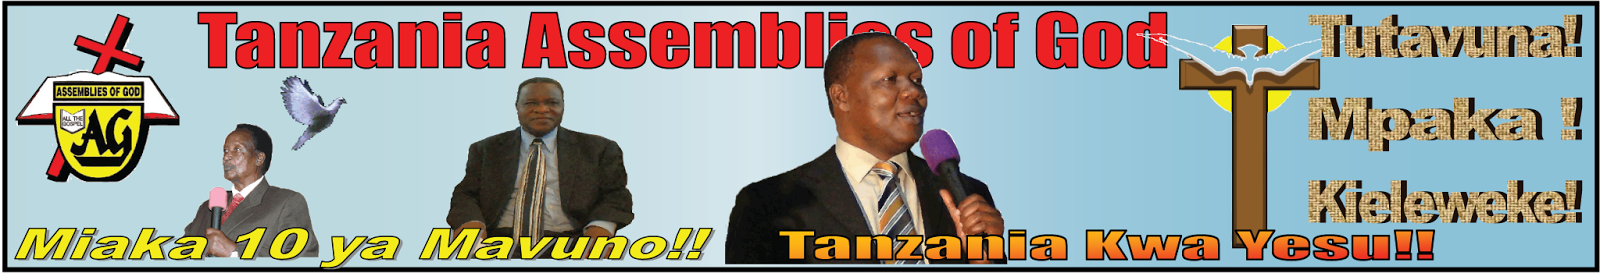 TANZANIA ASSEMBLIES OF GOD